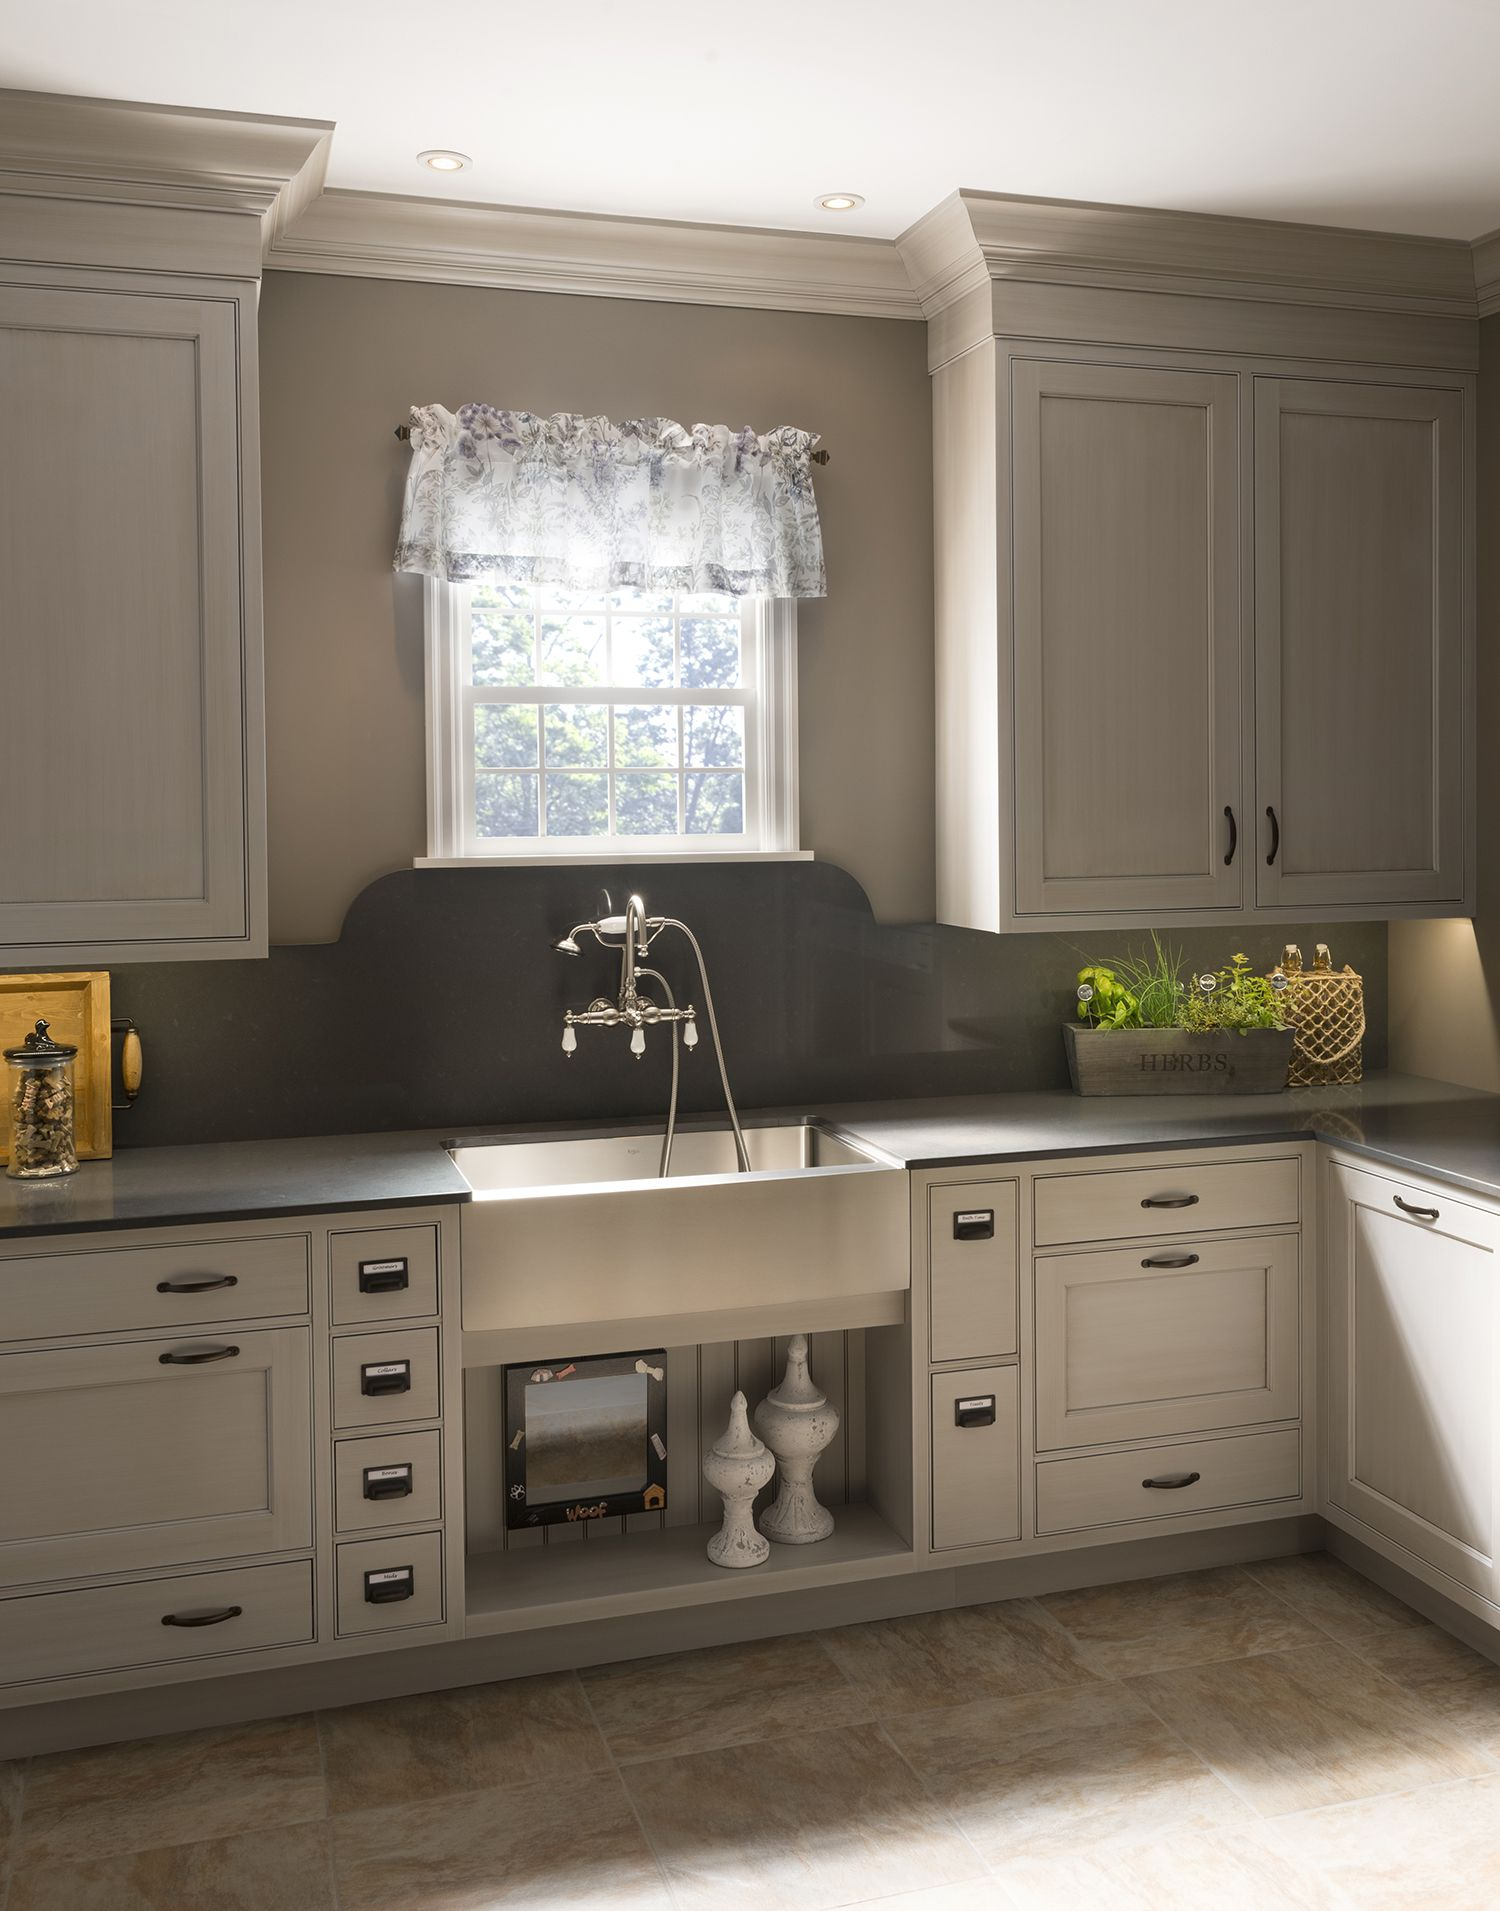 Coronado Recessed Door Style Shown In Vintage Dover Cliffs Finish On Maple Wood Mode Kitchen Copper Pots Kitchen